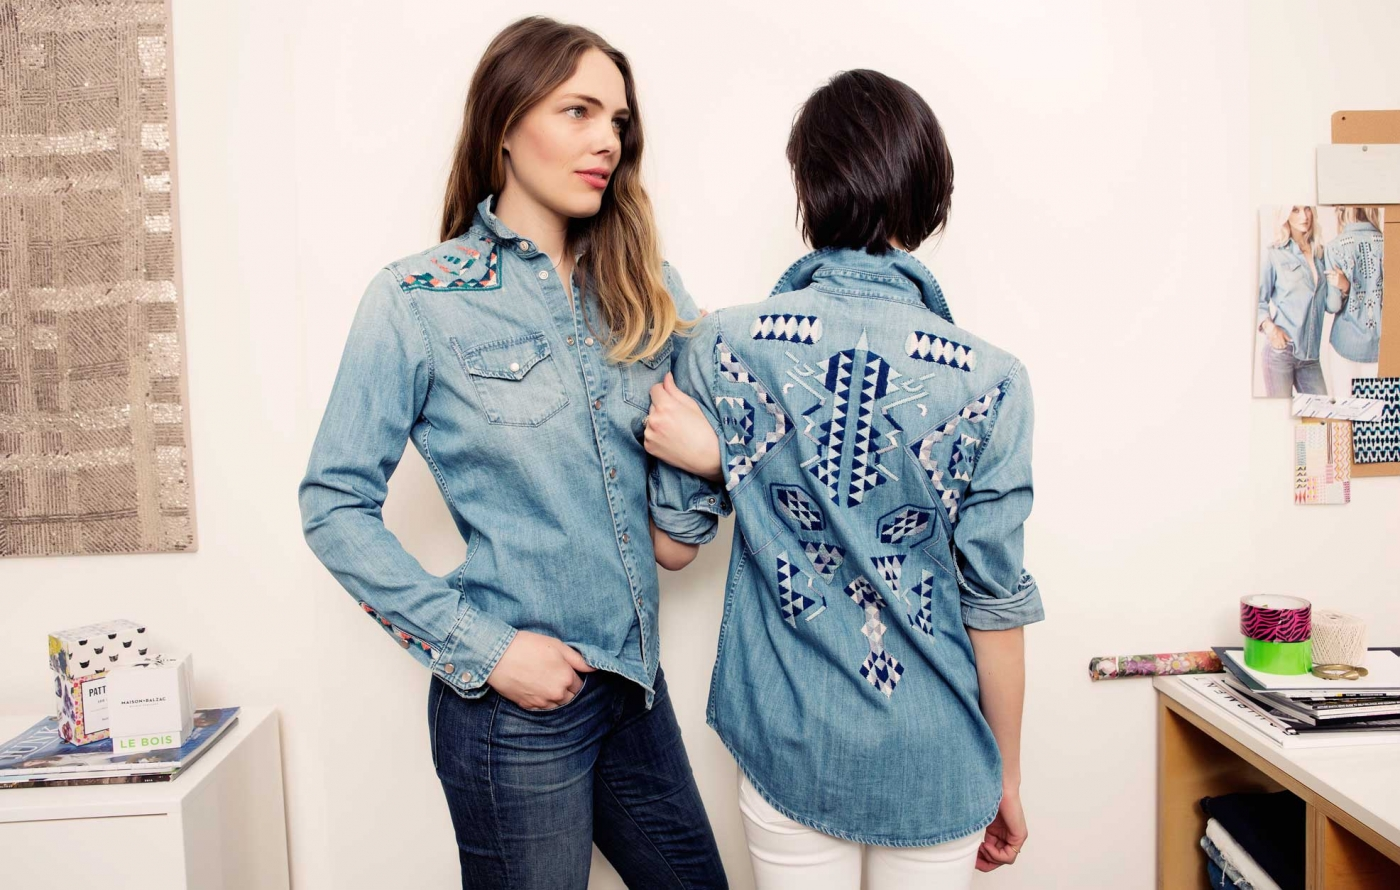 56629da54e4 Jean of the Week  Mother Denim s Embroidered Shirts - Jean STORIES